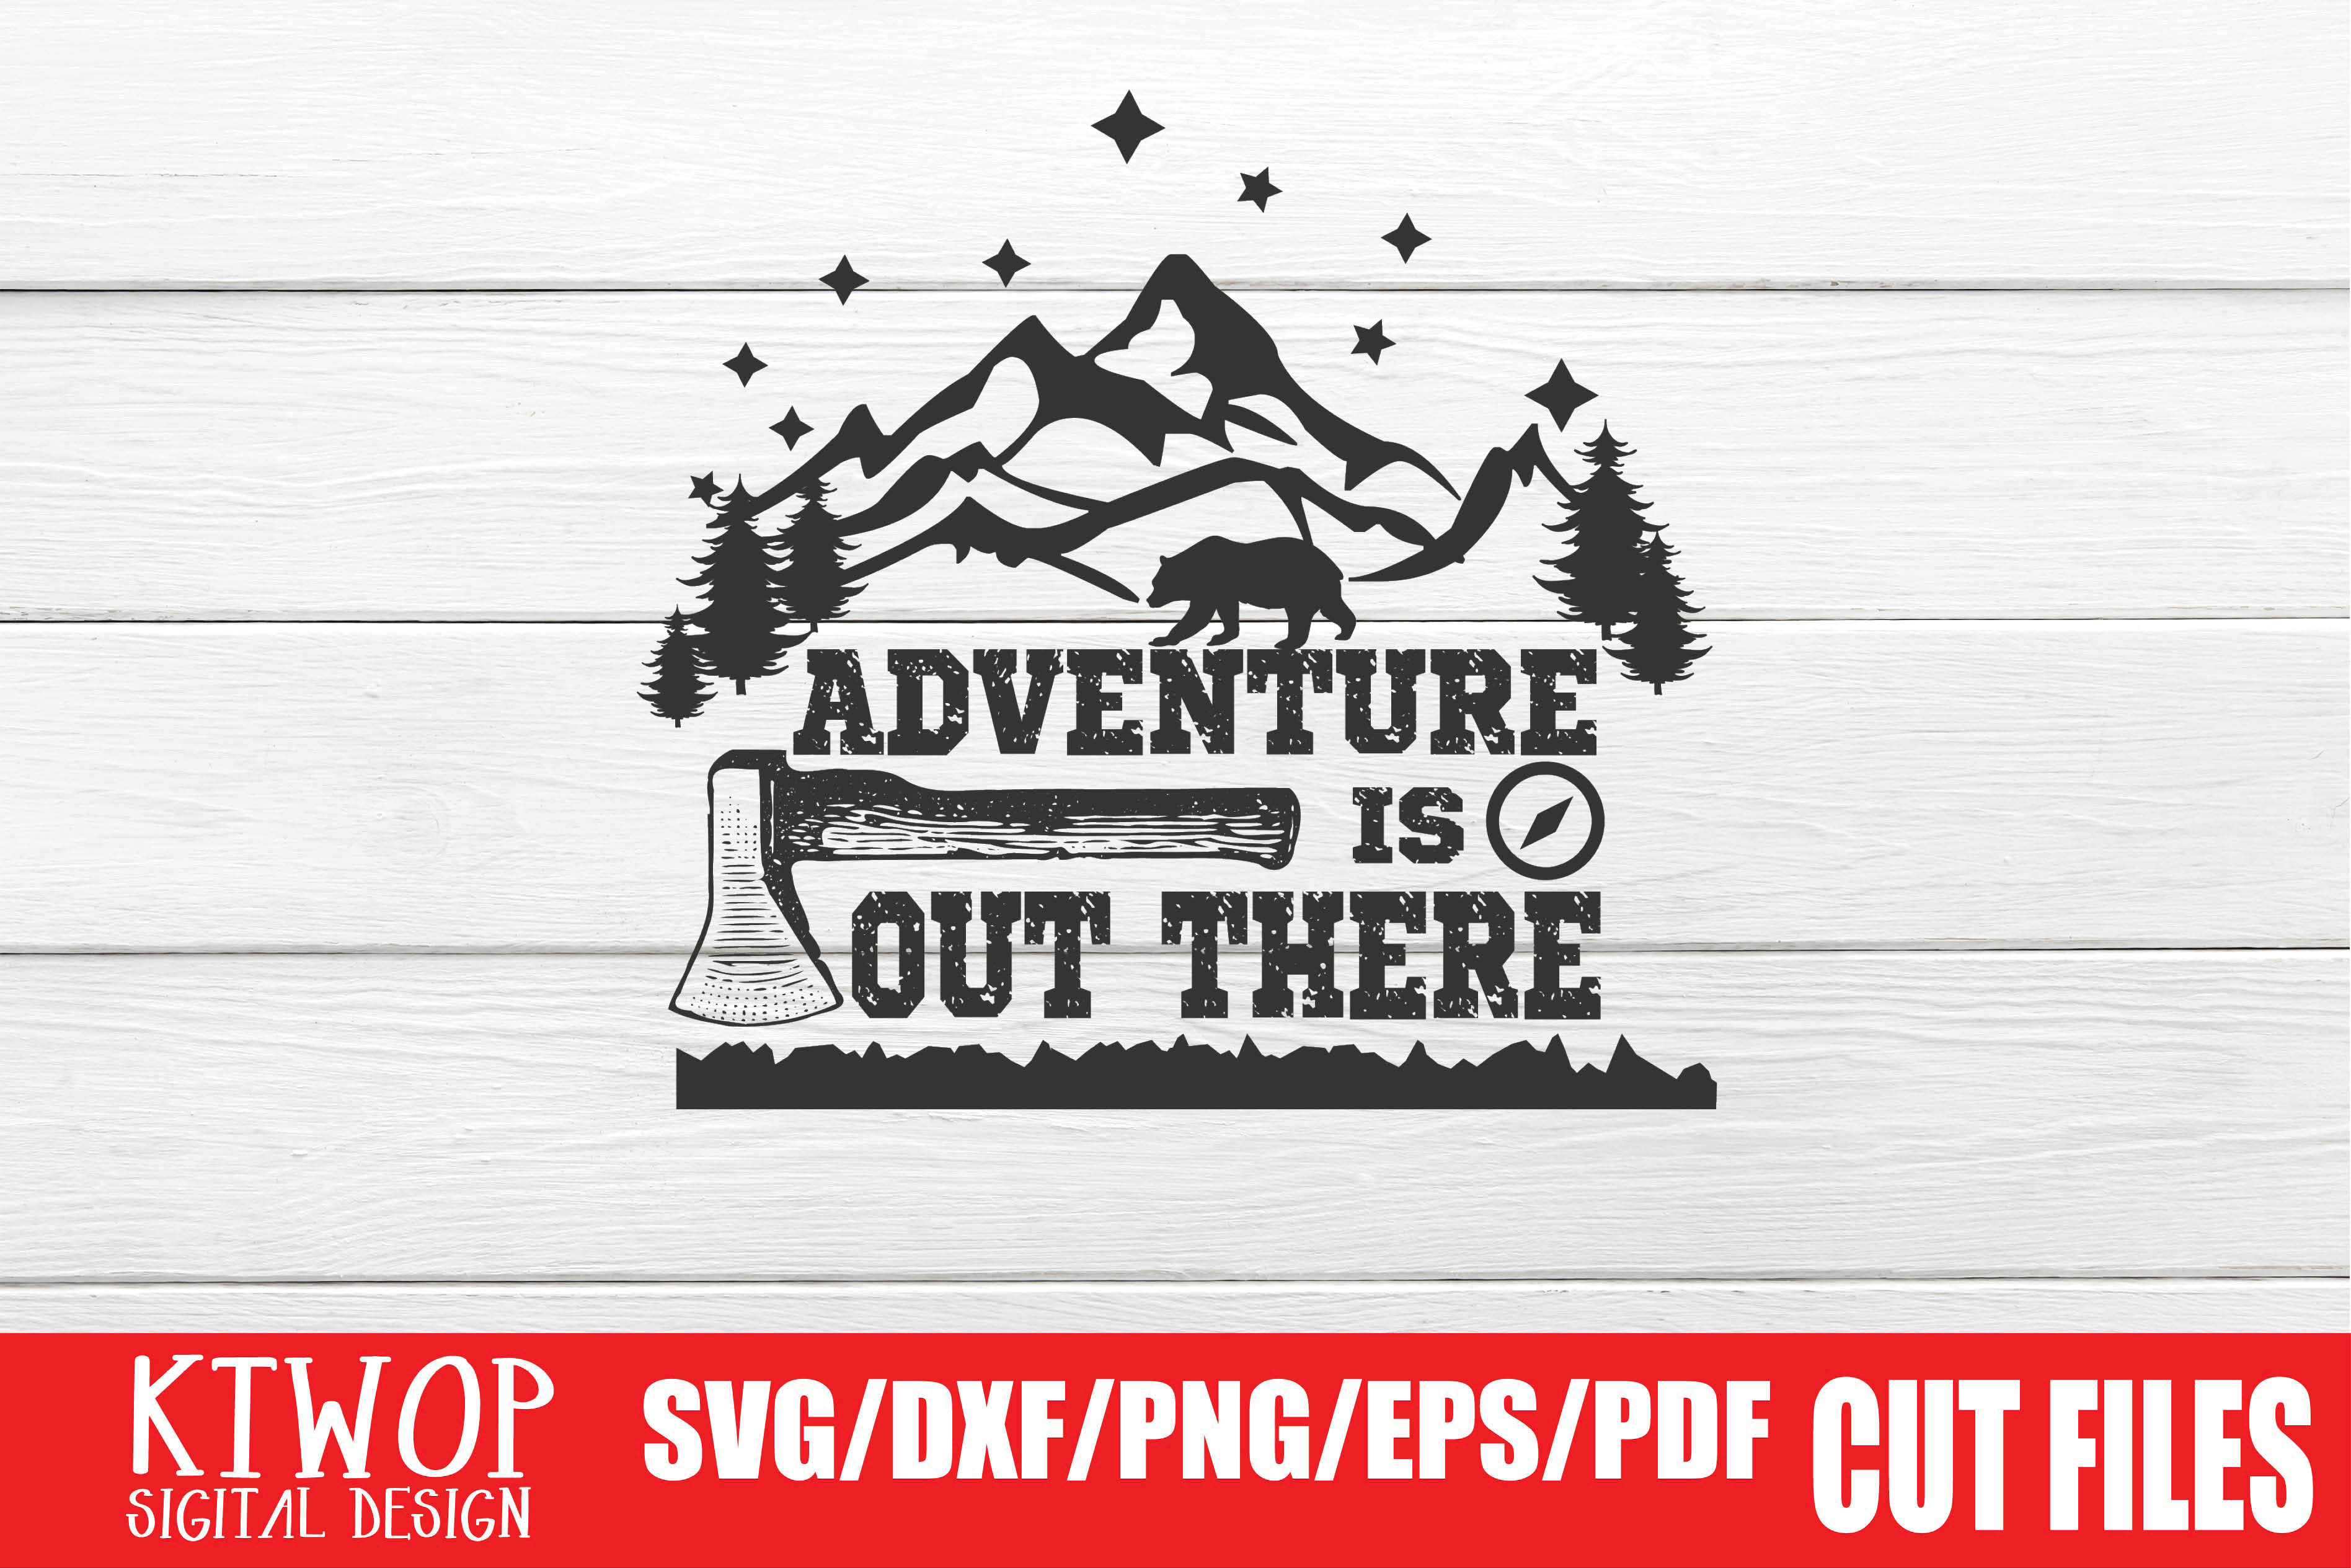 Download Free Adventure Is Out There Graphic By Ktwop Creative Fabrica for Cricut Explore, Silhouette and other cutting machines.